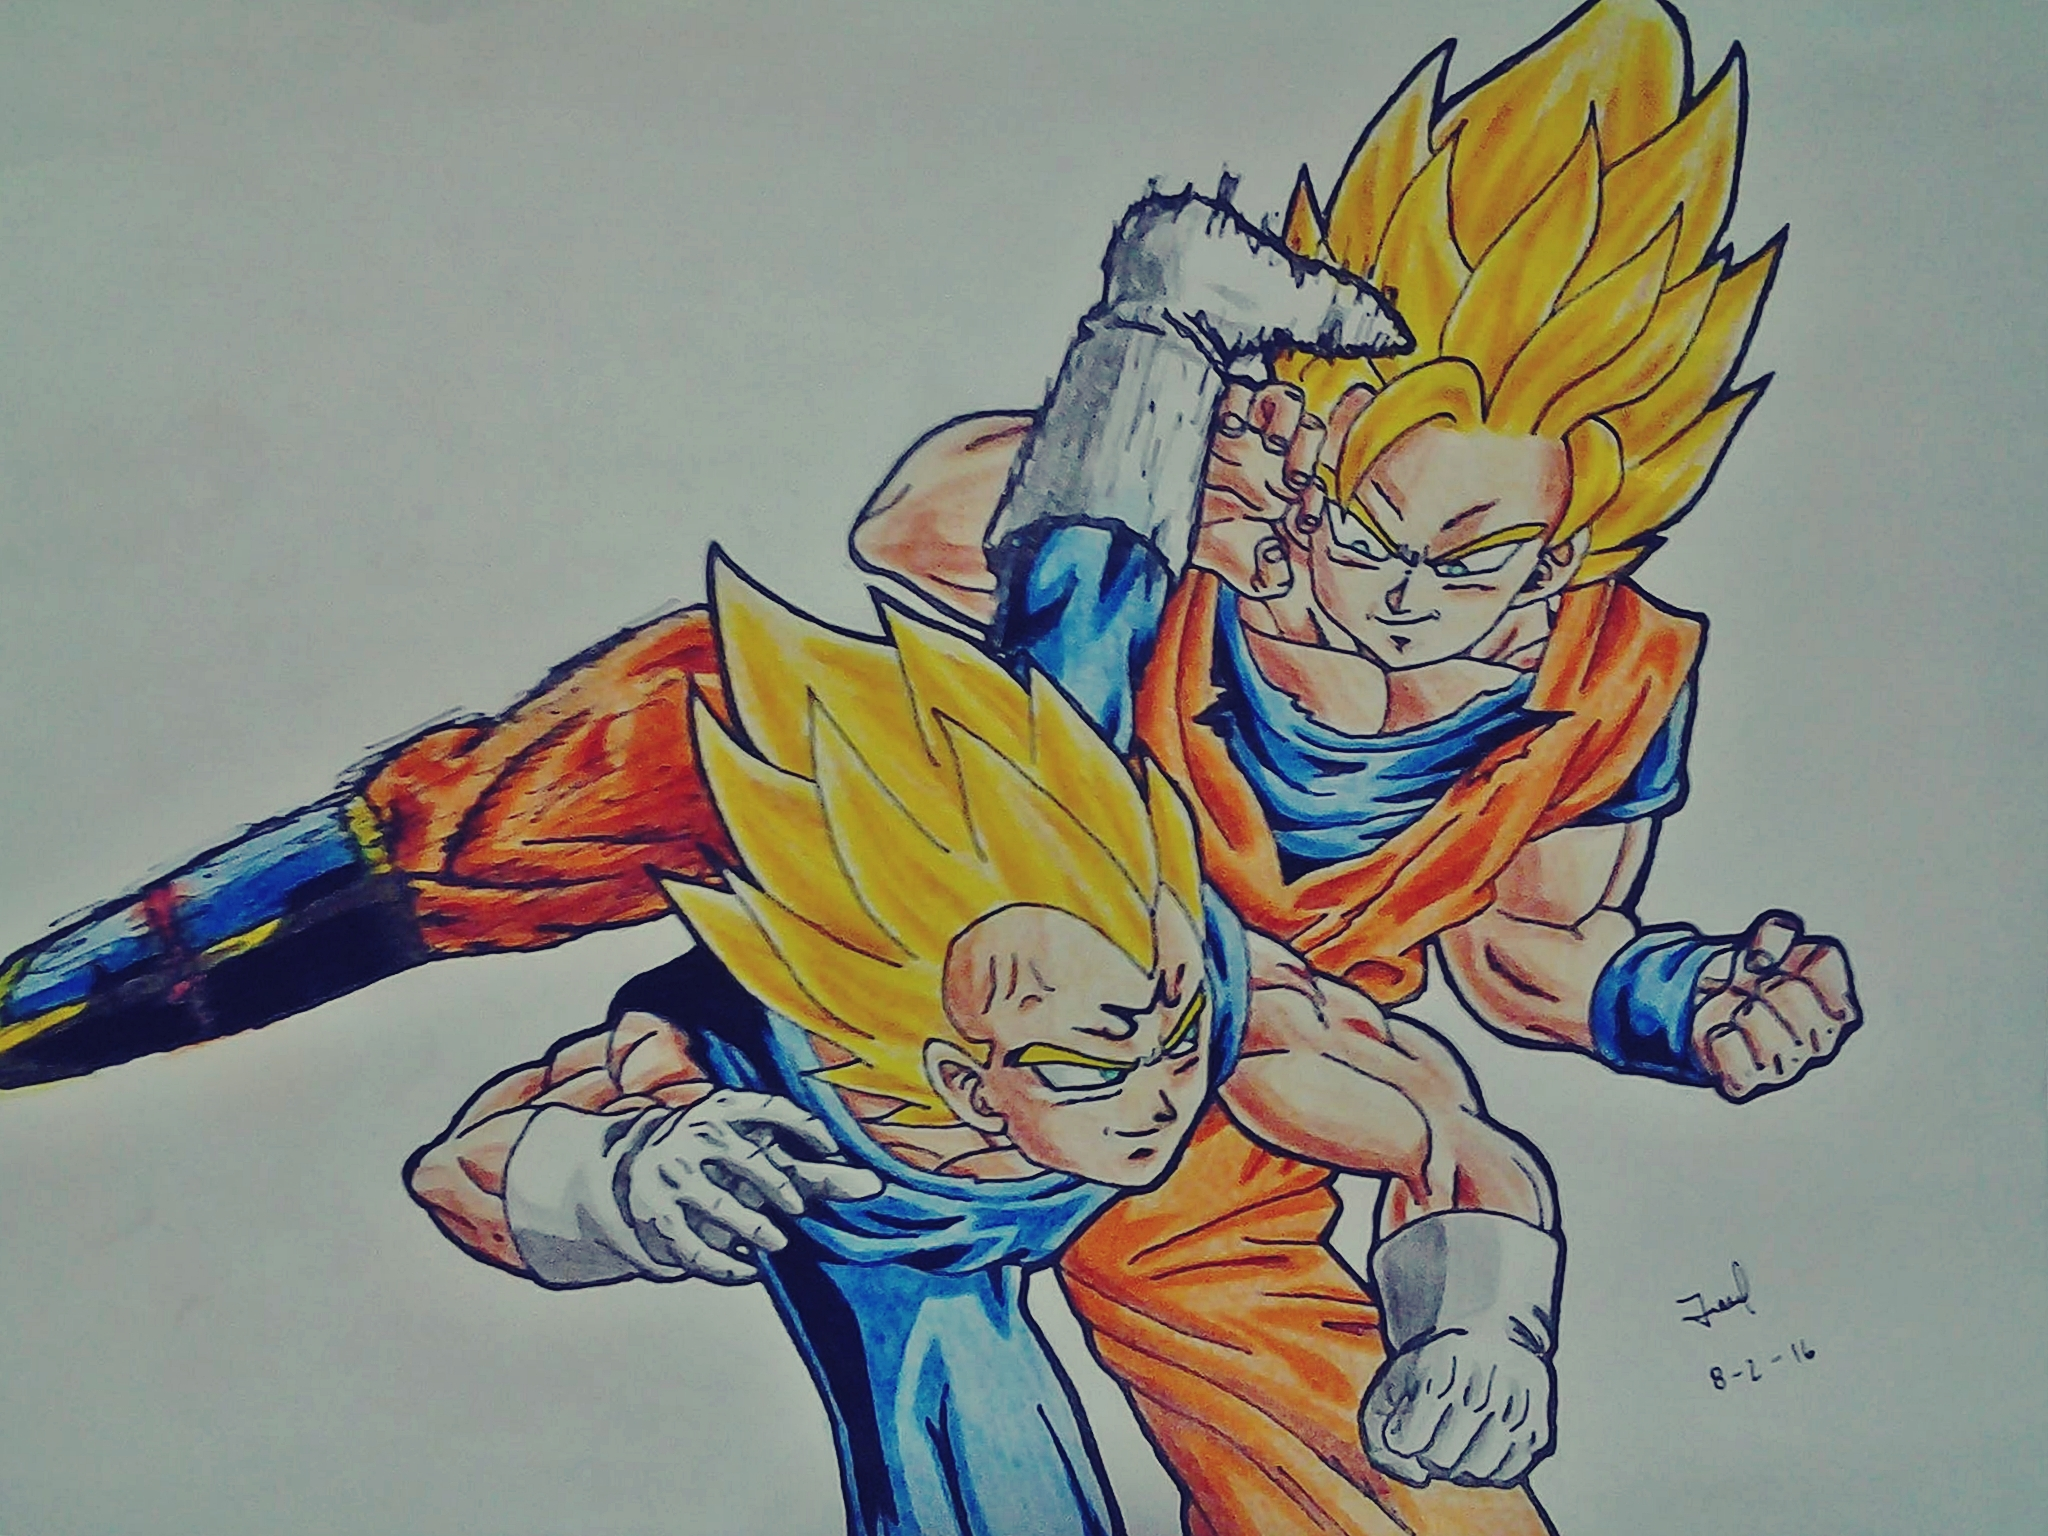 Dibujo De Goku Kakarotto Peleando Contra Vegeta Para: Goku Vs Majin Vegeta [Jelo Fan Art] By JeloRamone On